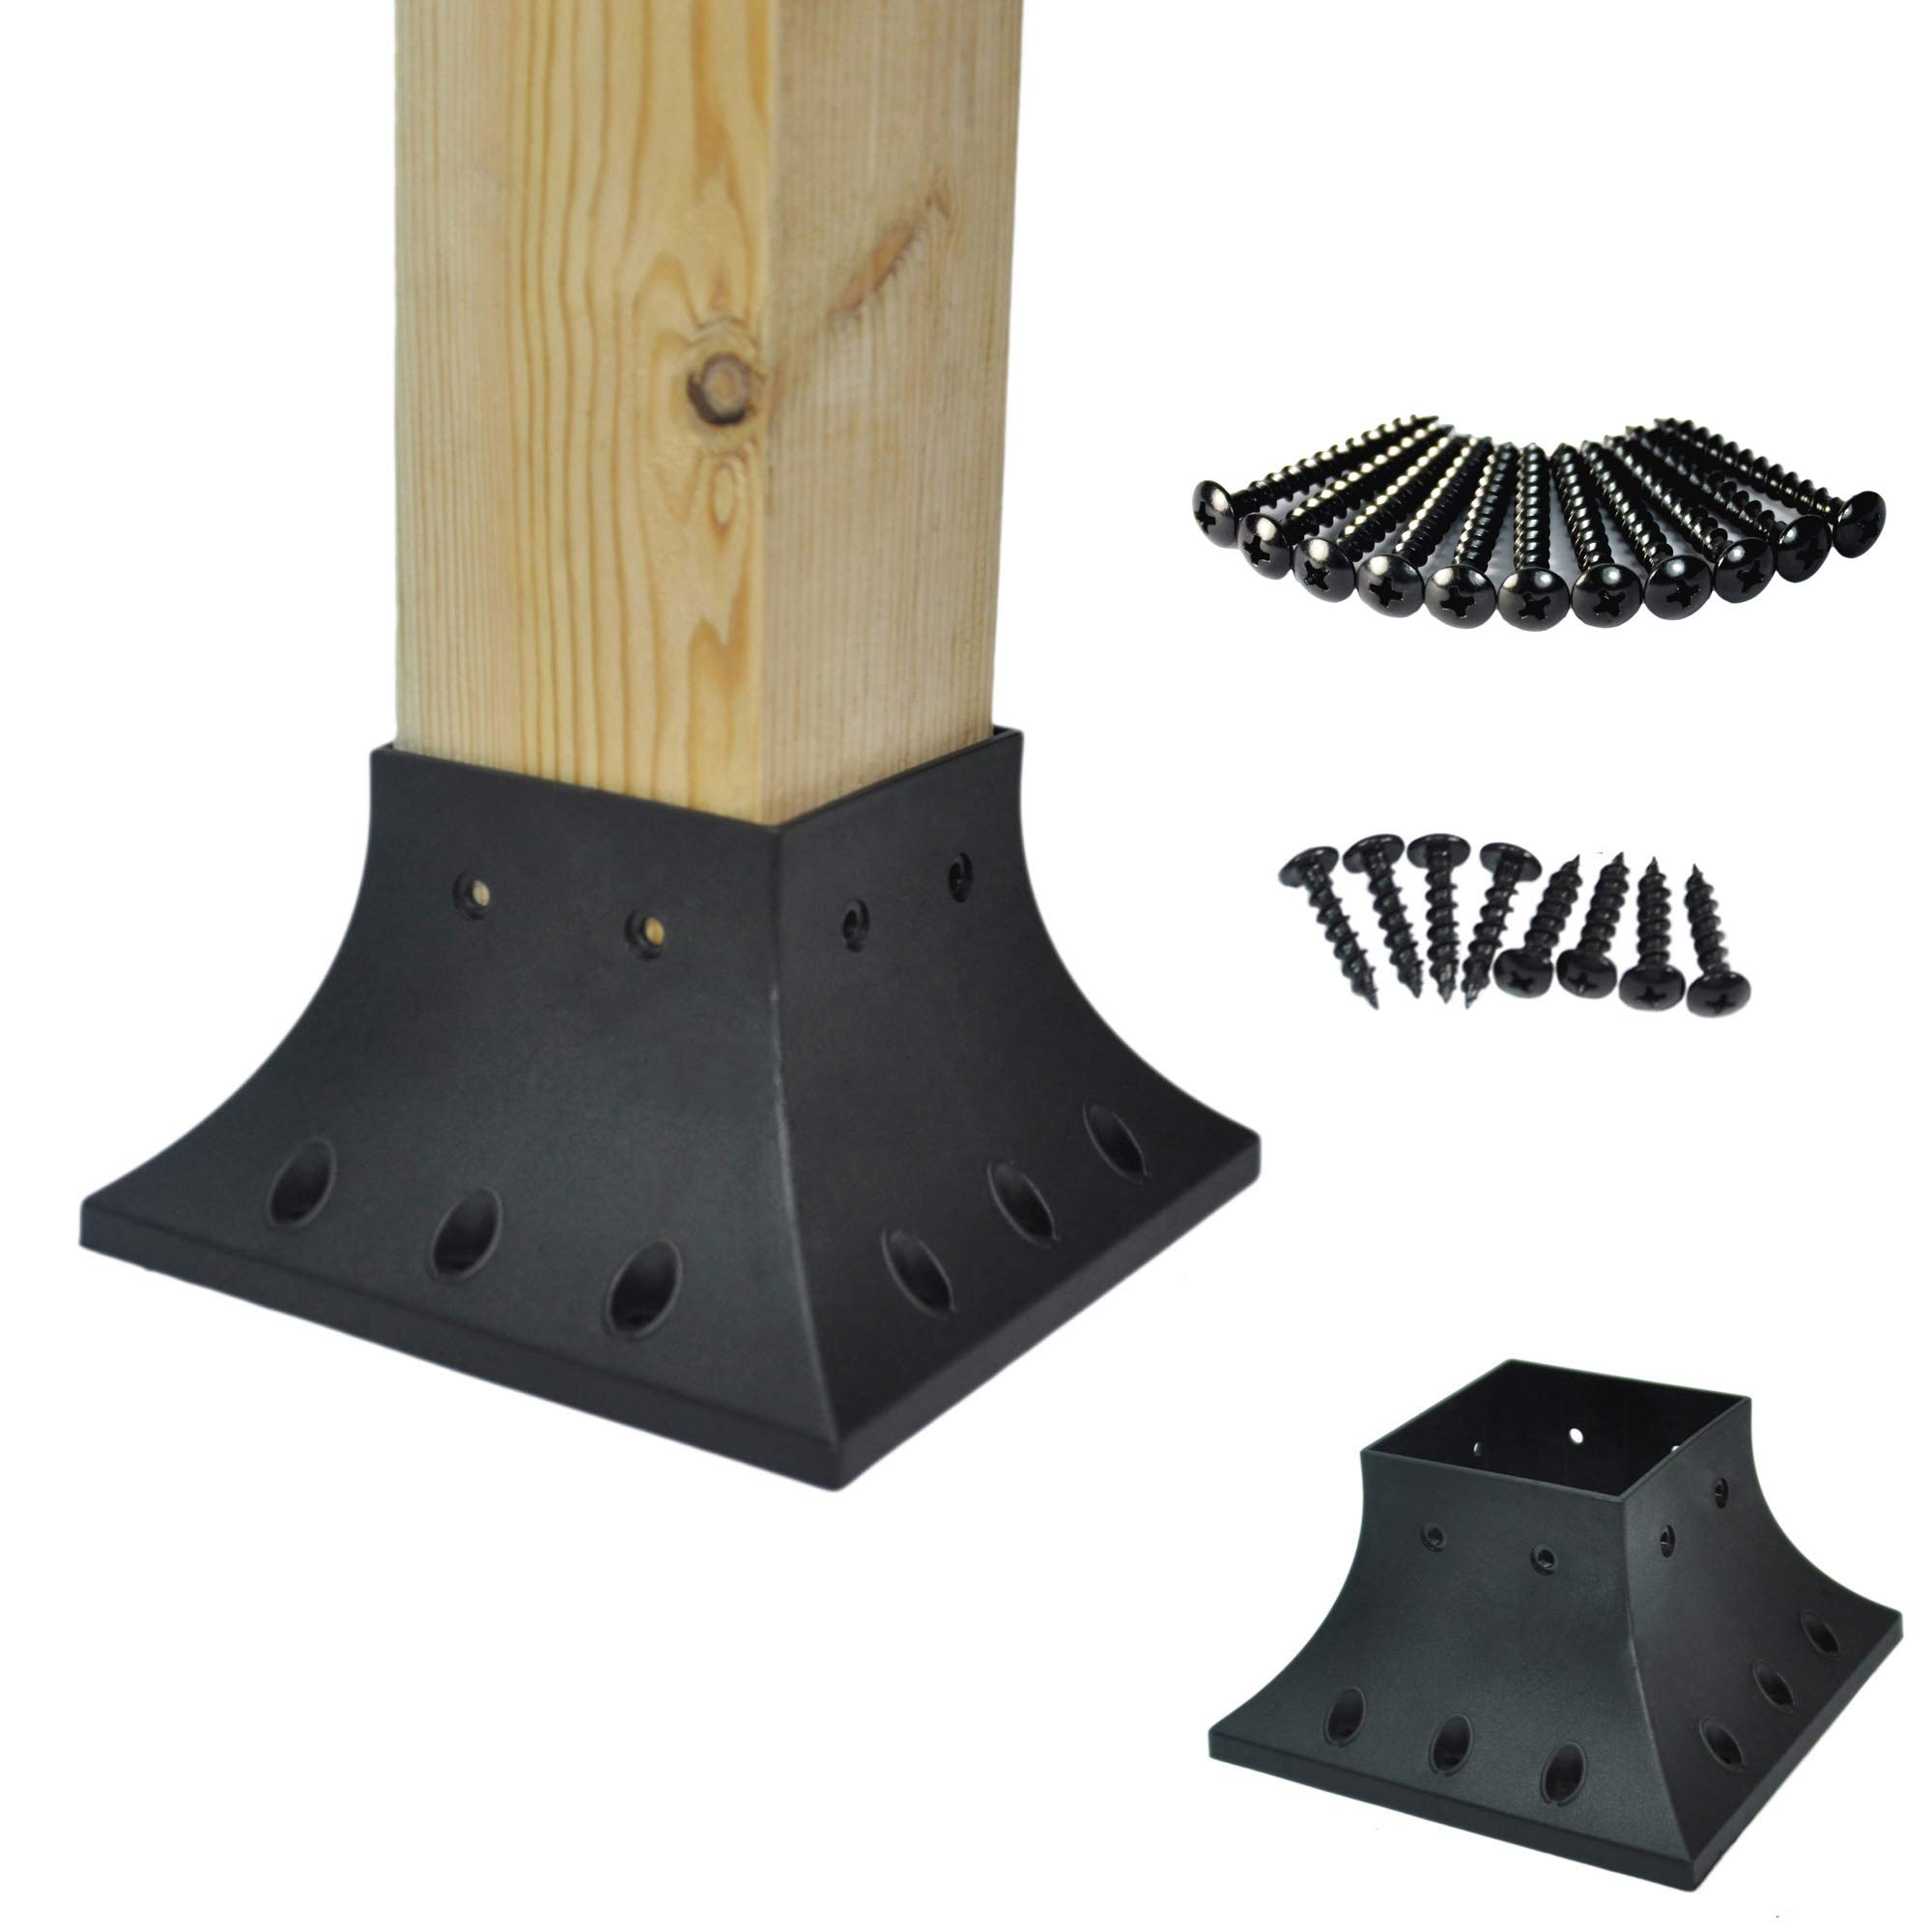 Myard PNP114040 4x4 (Actual 3.5x3.5) Inches Post Base Cover Skirt Flange with Screws for Deck Porch Handrail Railing Support Trim Anchor (Qty 4, Black) by Myard